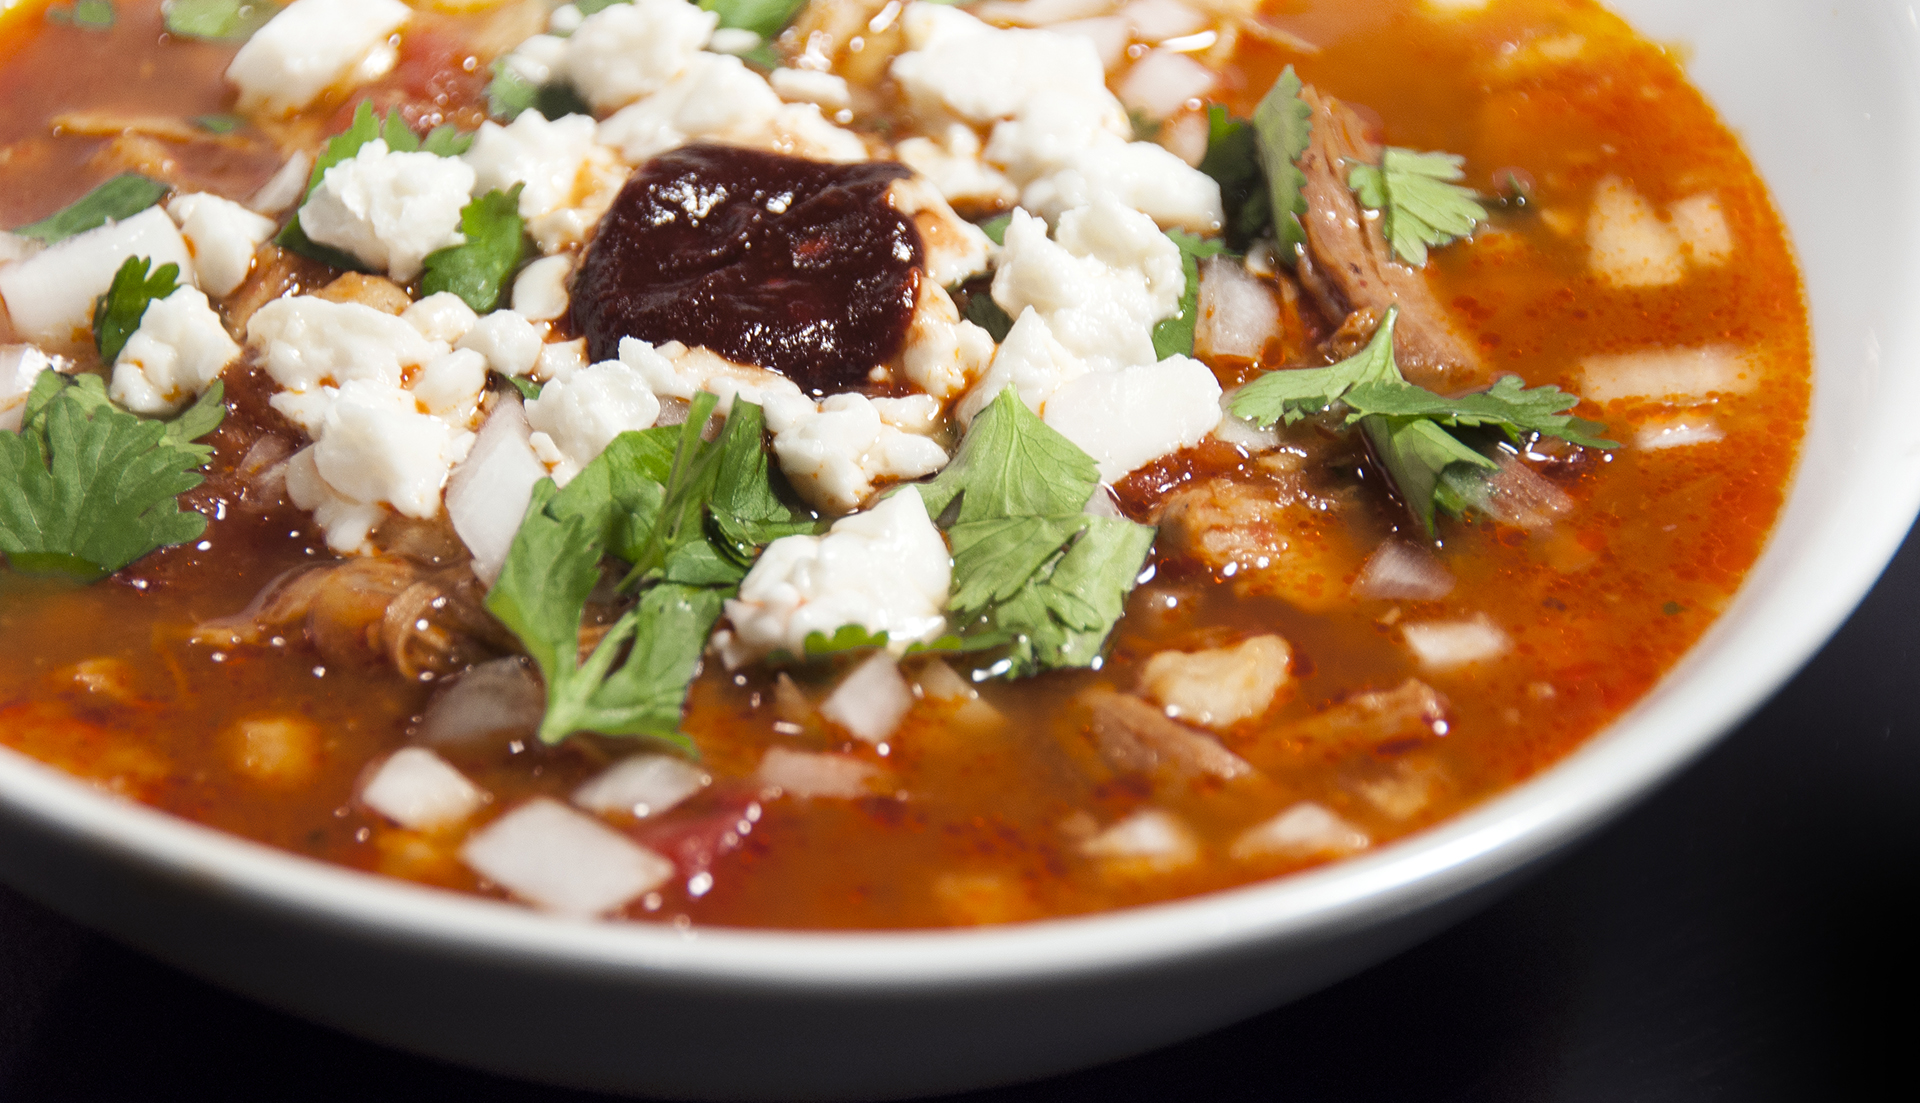 gallery for pozole mexicano recipe displaying 19 images for pozole ...